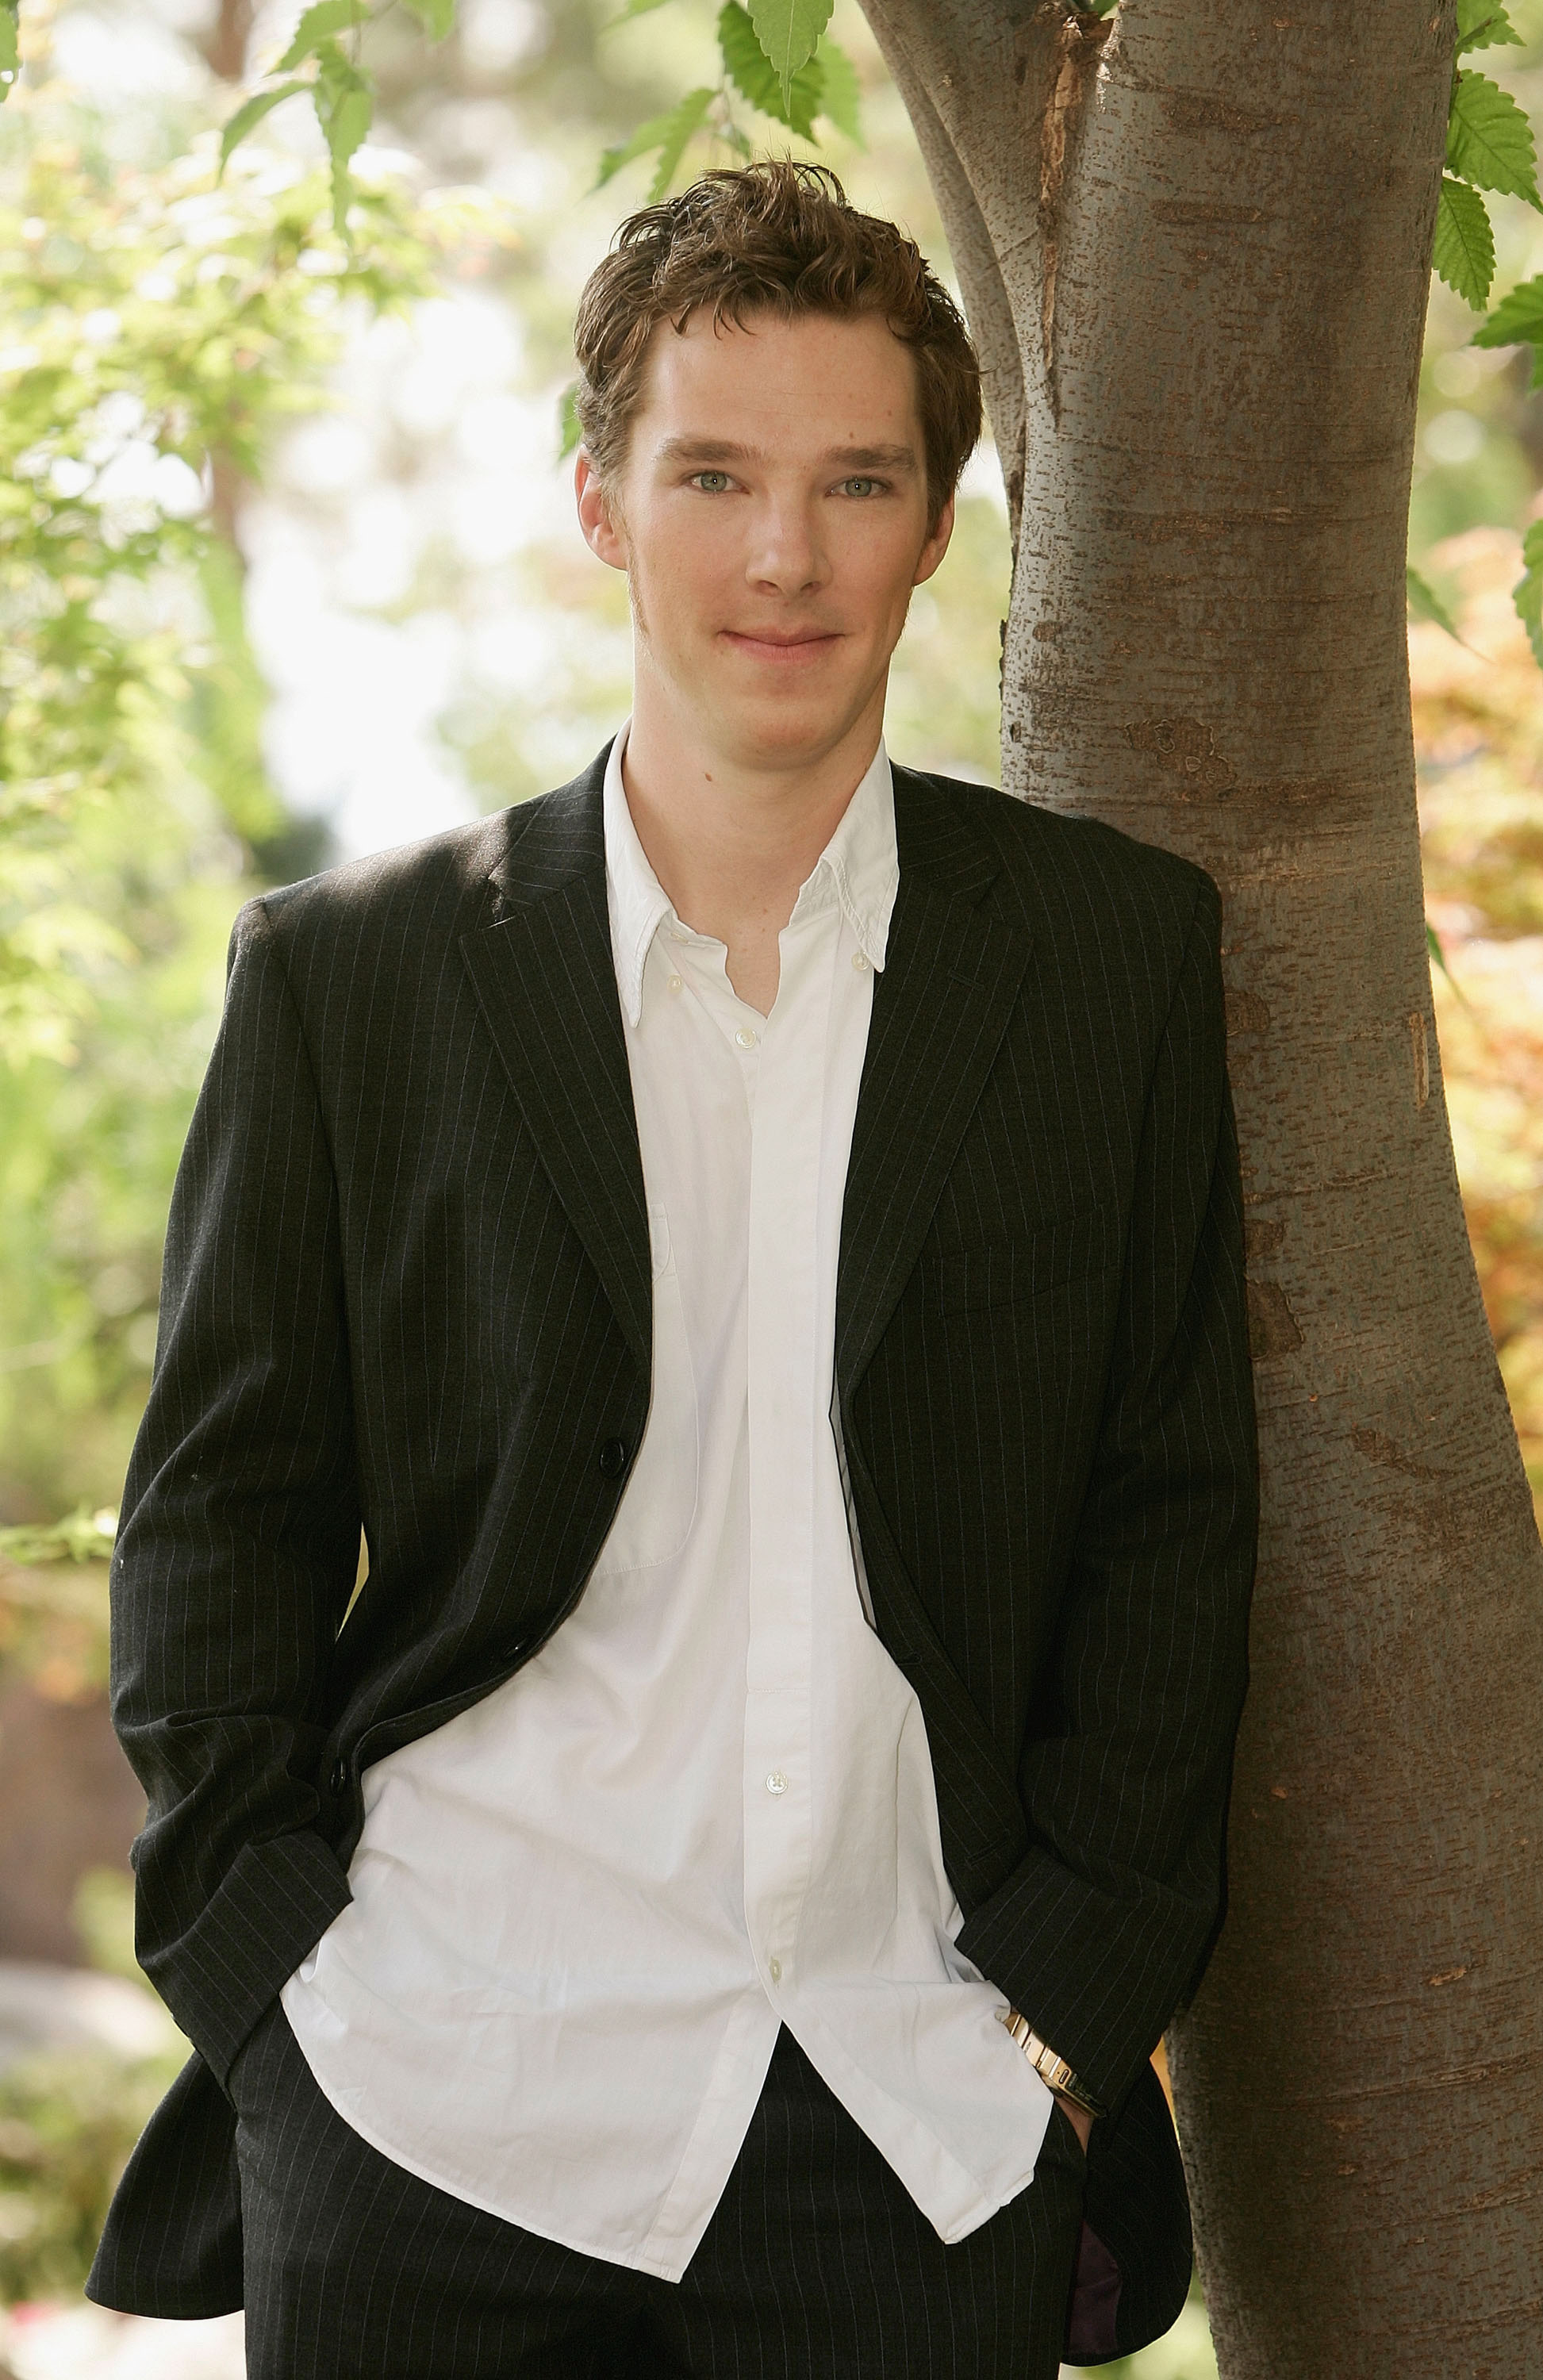 Benedict Cumberbatch younger photo two at bustle.com